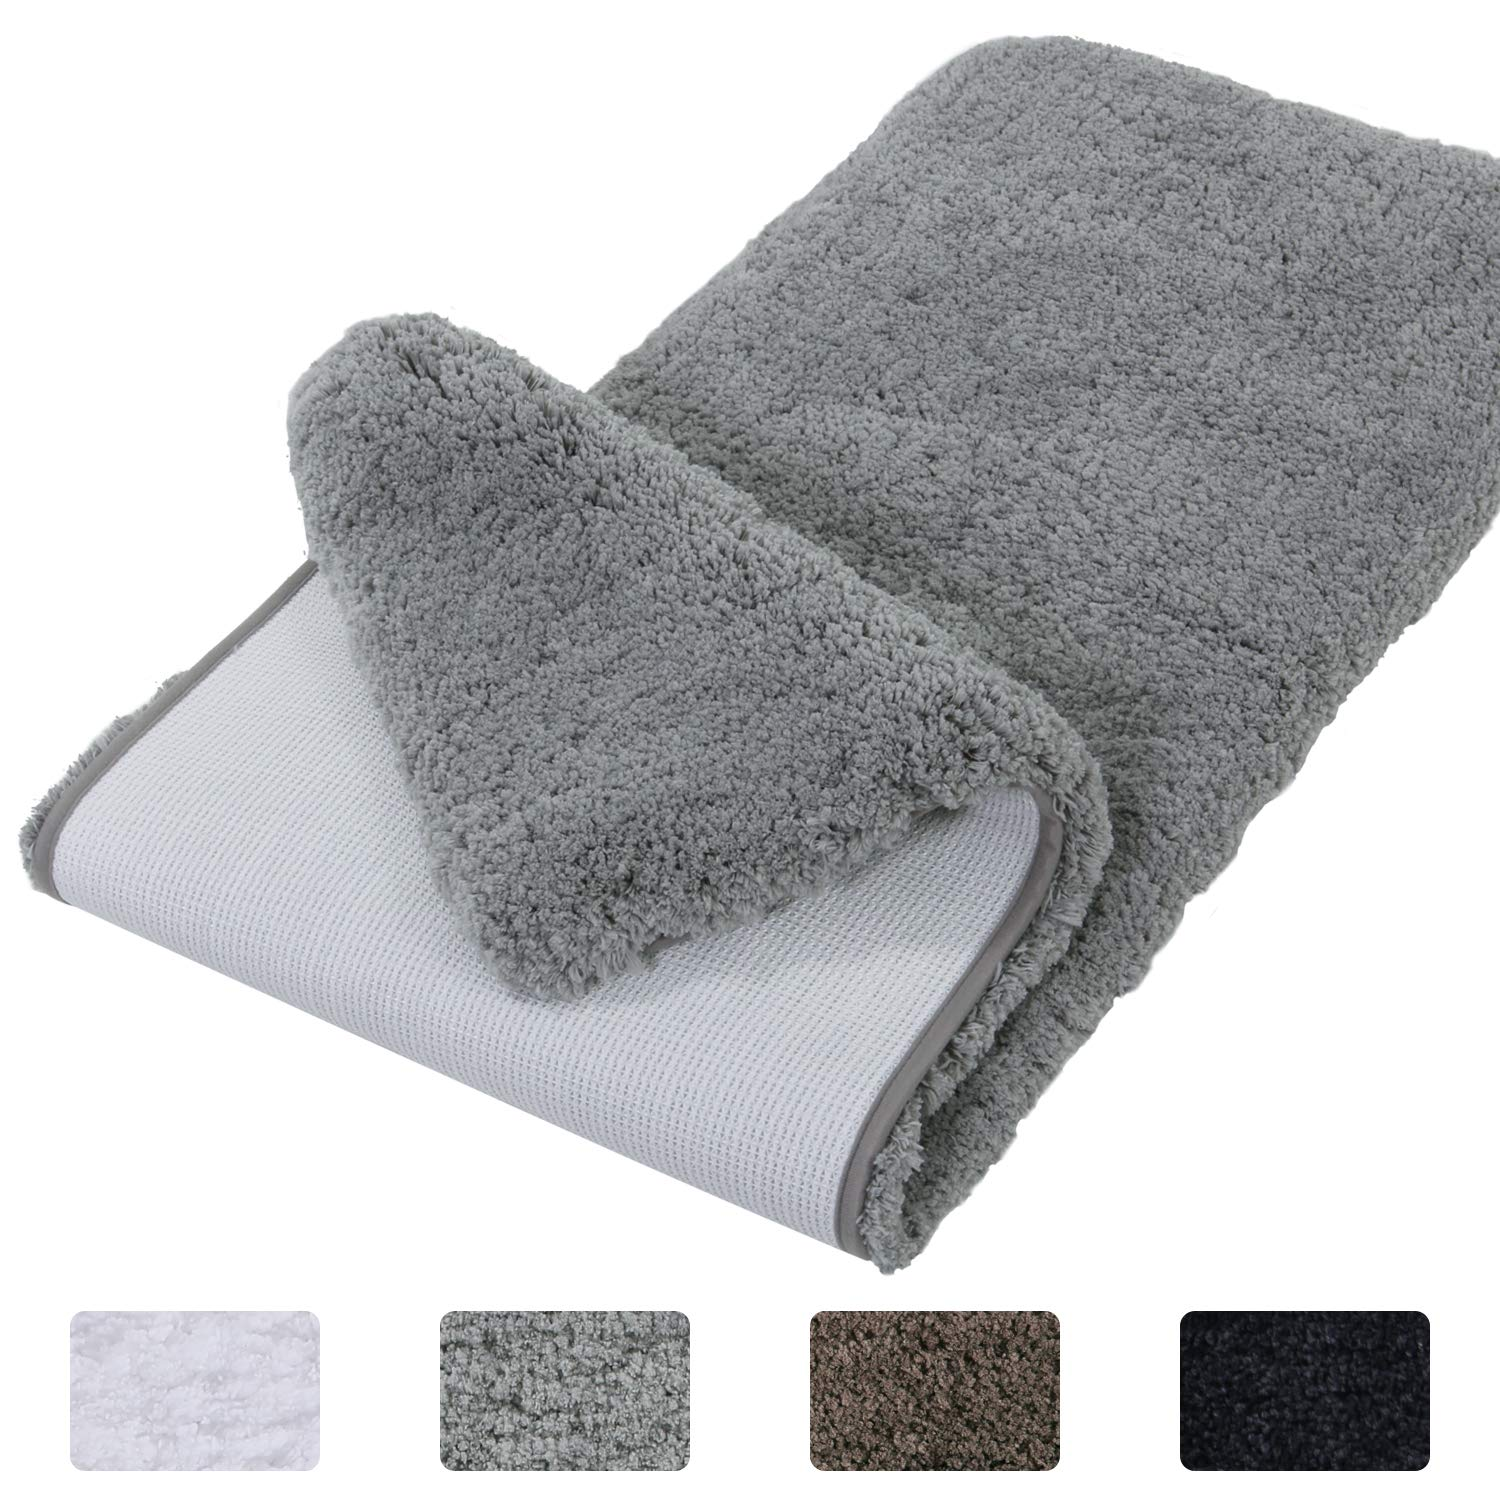 Lifewit Bathroom Rug Bath Mat Non-Slip Rubber Microfiber Soft Water Absorbent Thick Shaggy Floor Mats, Machine Washable, Grey, 59''x20''